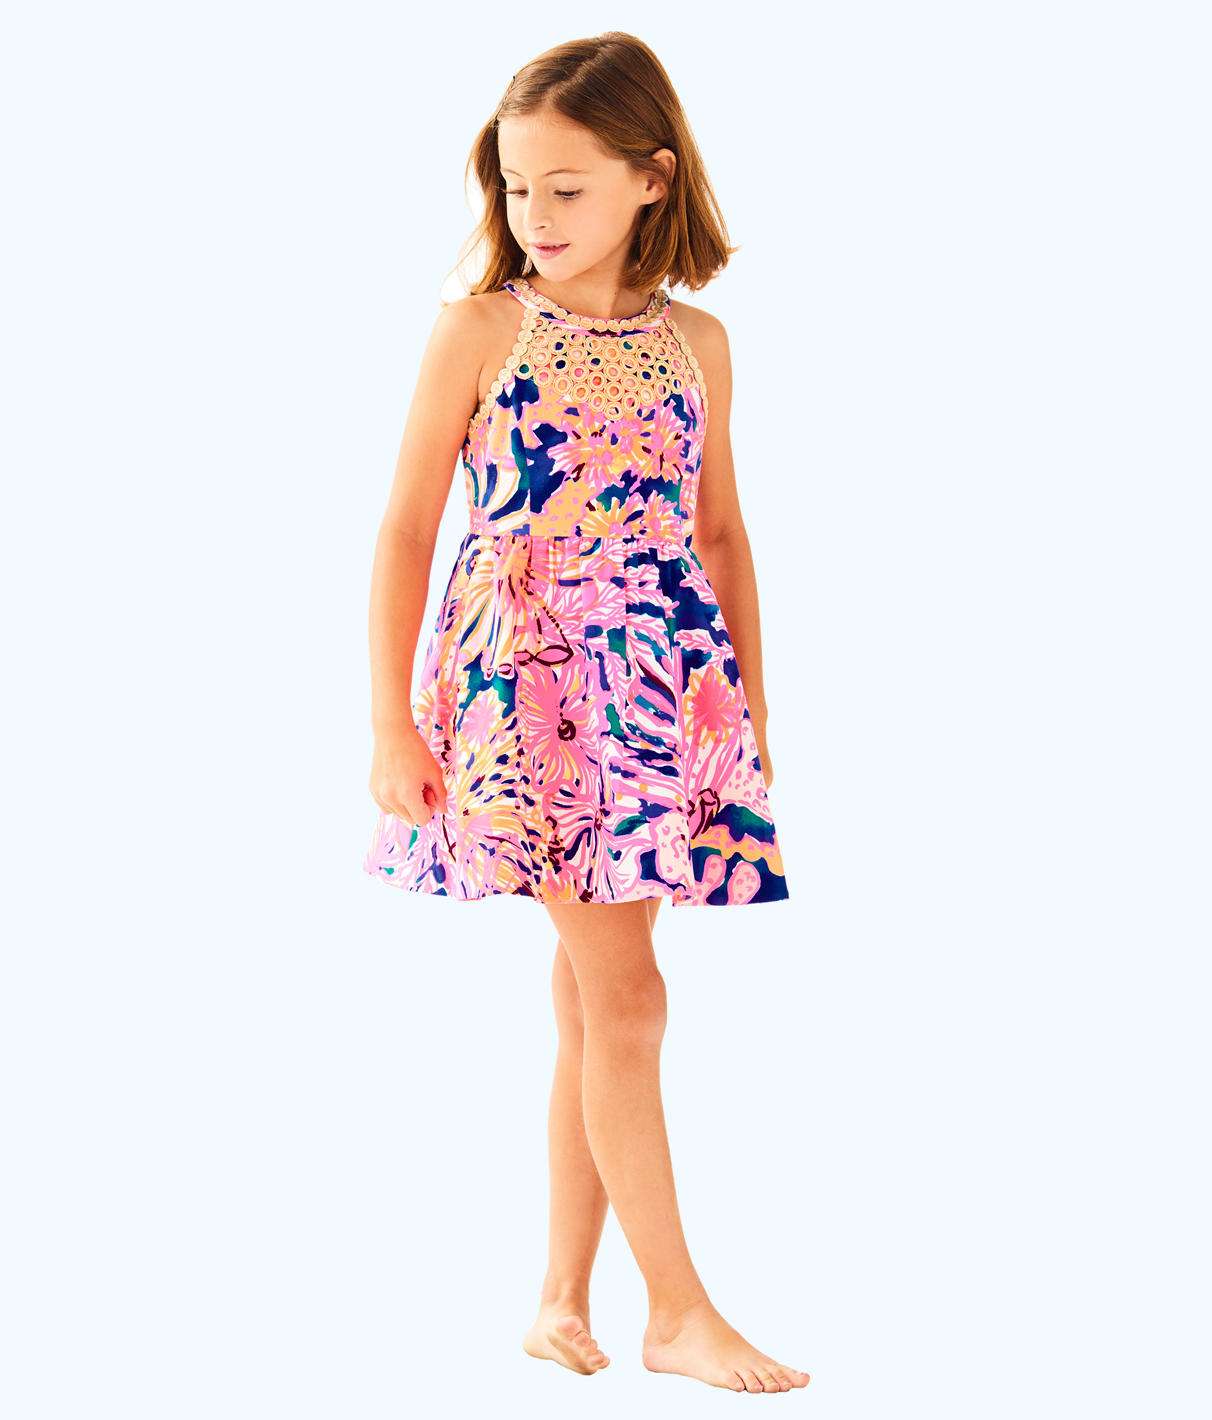 Lilly Pulitzer Lilly Pulitzer Girls Kinley Dress